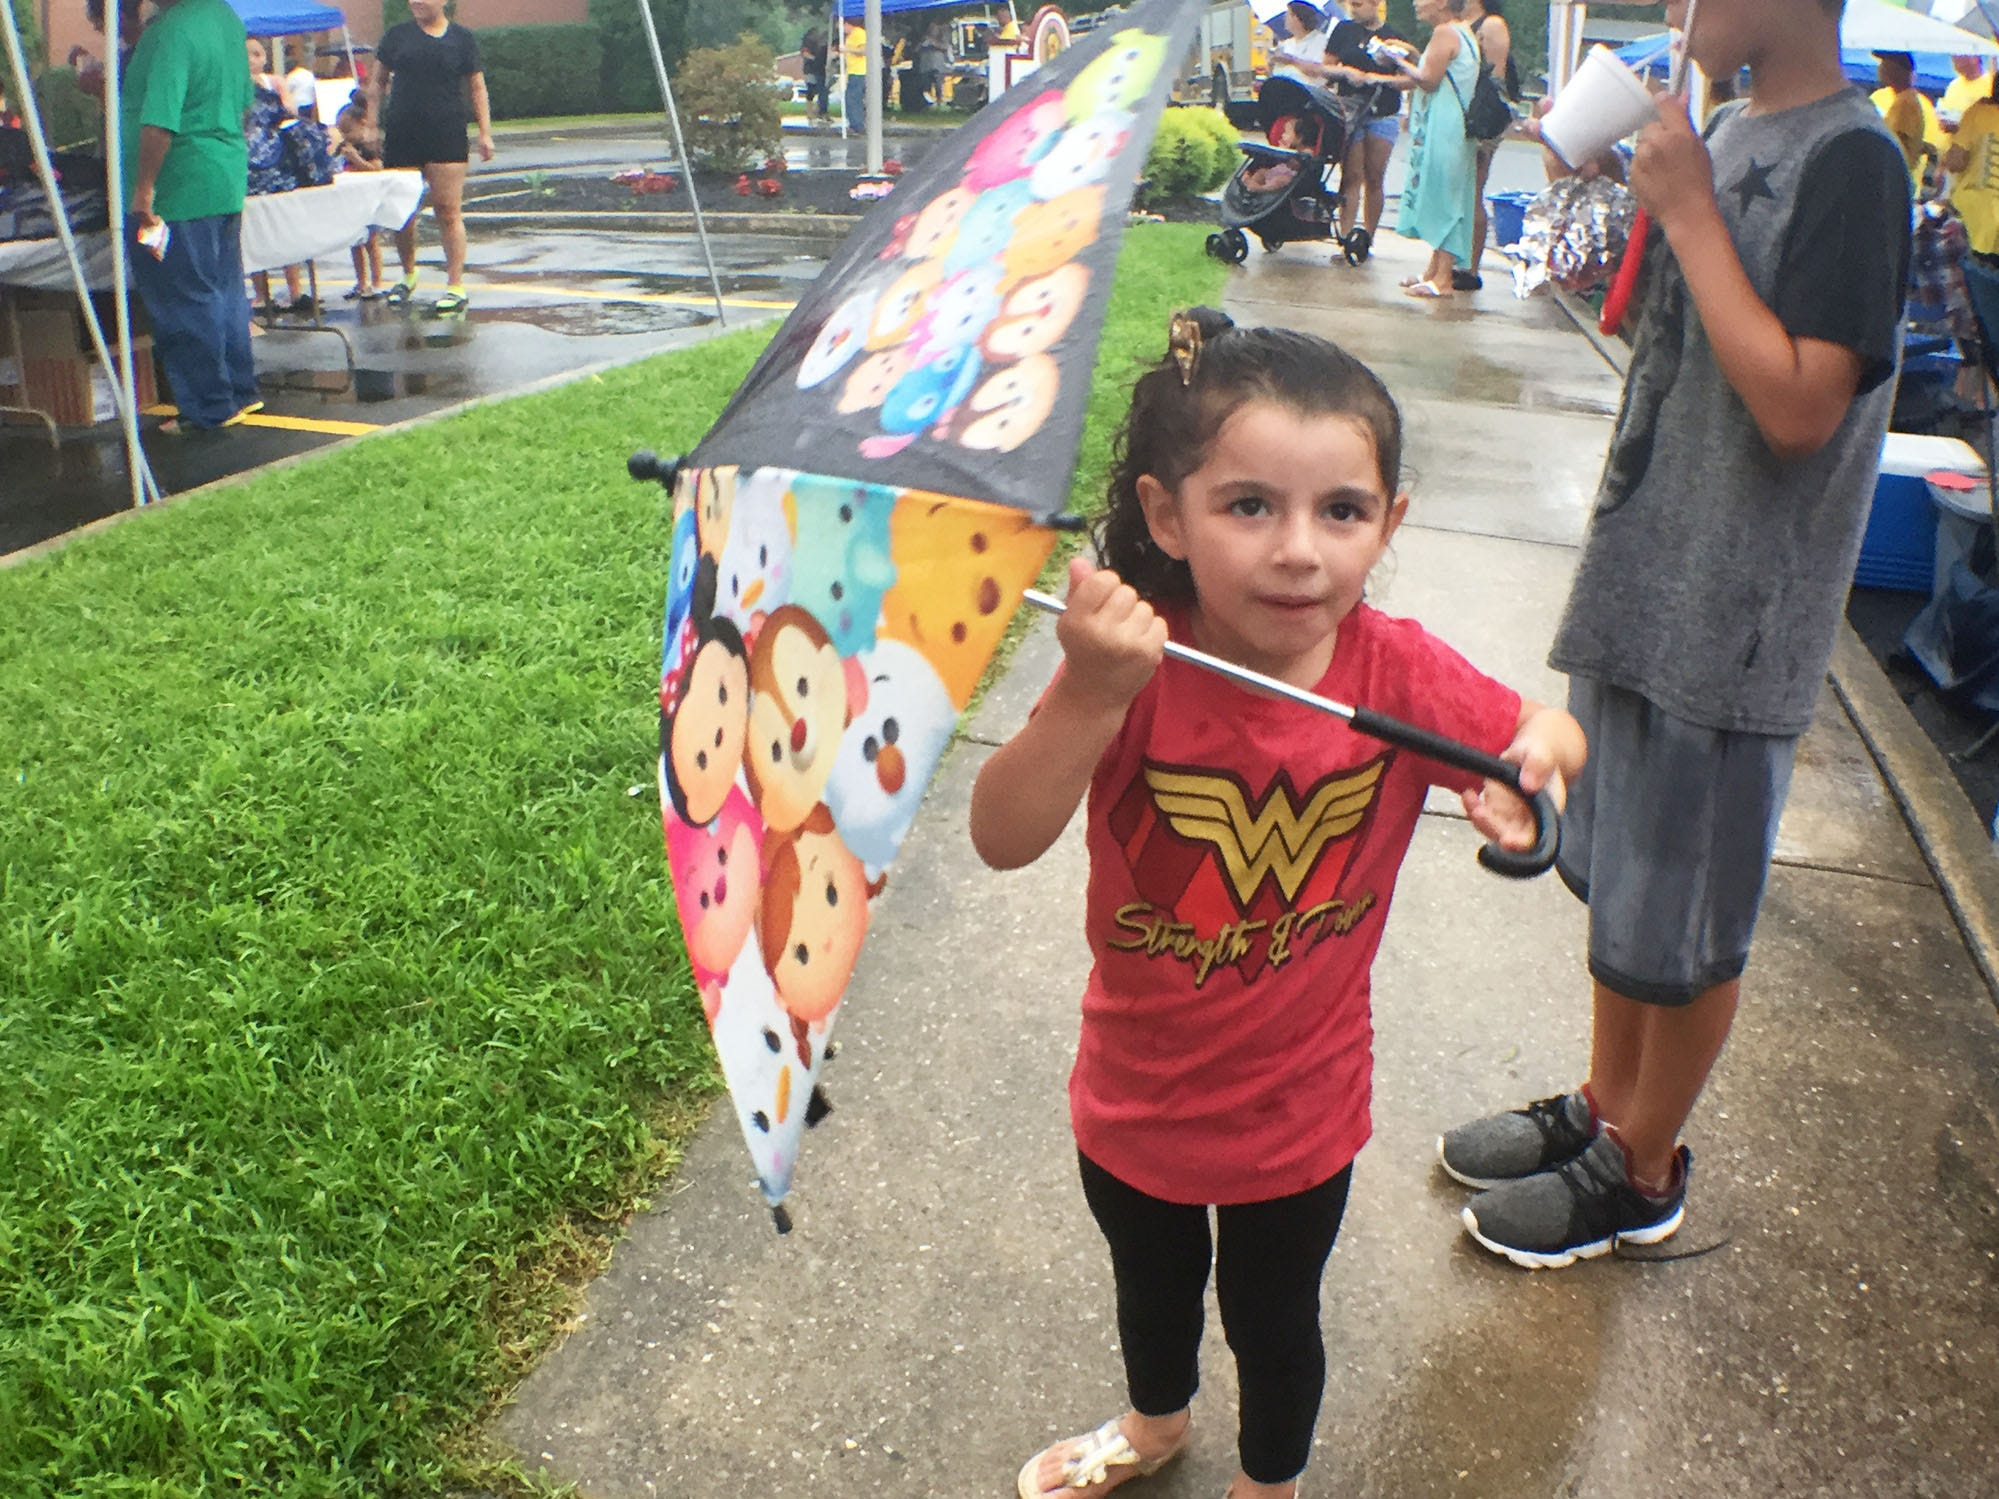 Leilany Acevedo, 3, twirls her umbrella in the rain while enjoying the festivities. Chambersburg Police Department National Night Out was held Tuesday, August 7, 2018 at the Franklin County Housing Authority complex. The annual event is designed to have community members get a chance to meet first responders.